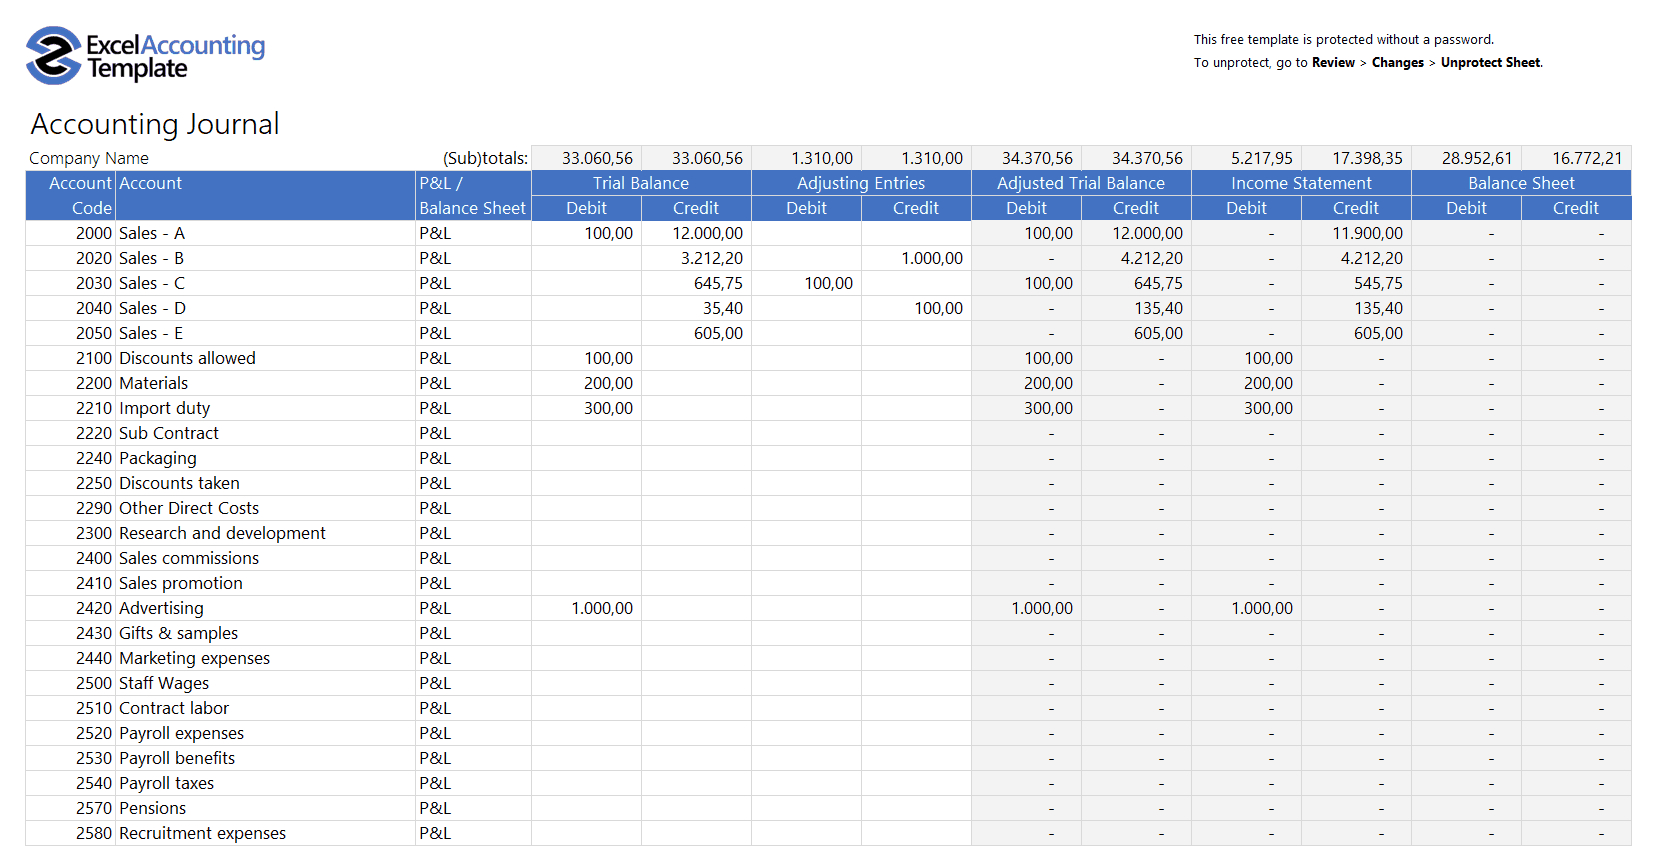 Vat Records Spreadsheet Pertaining To Free Accounting Templates In Excel  Download For Your Business